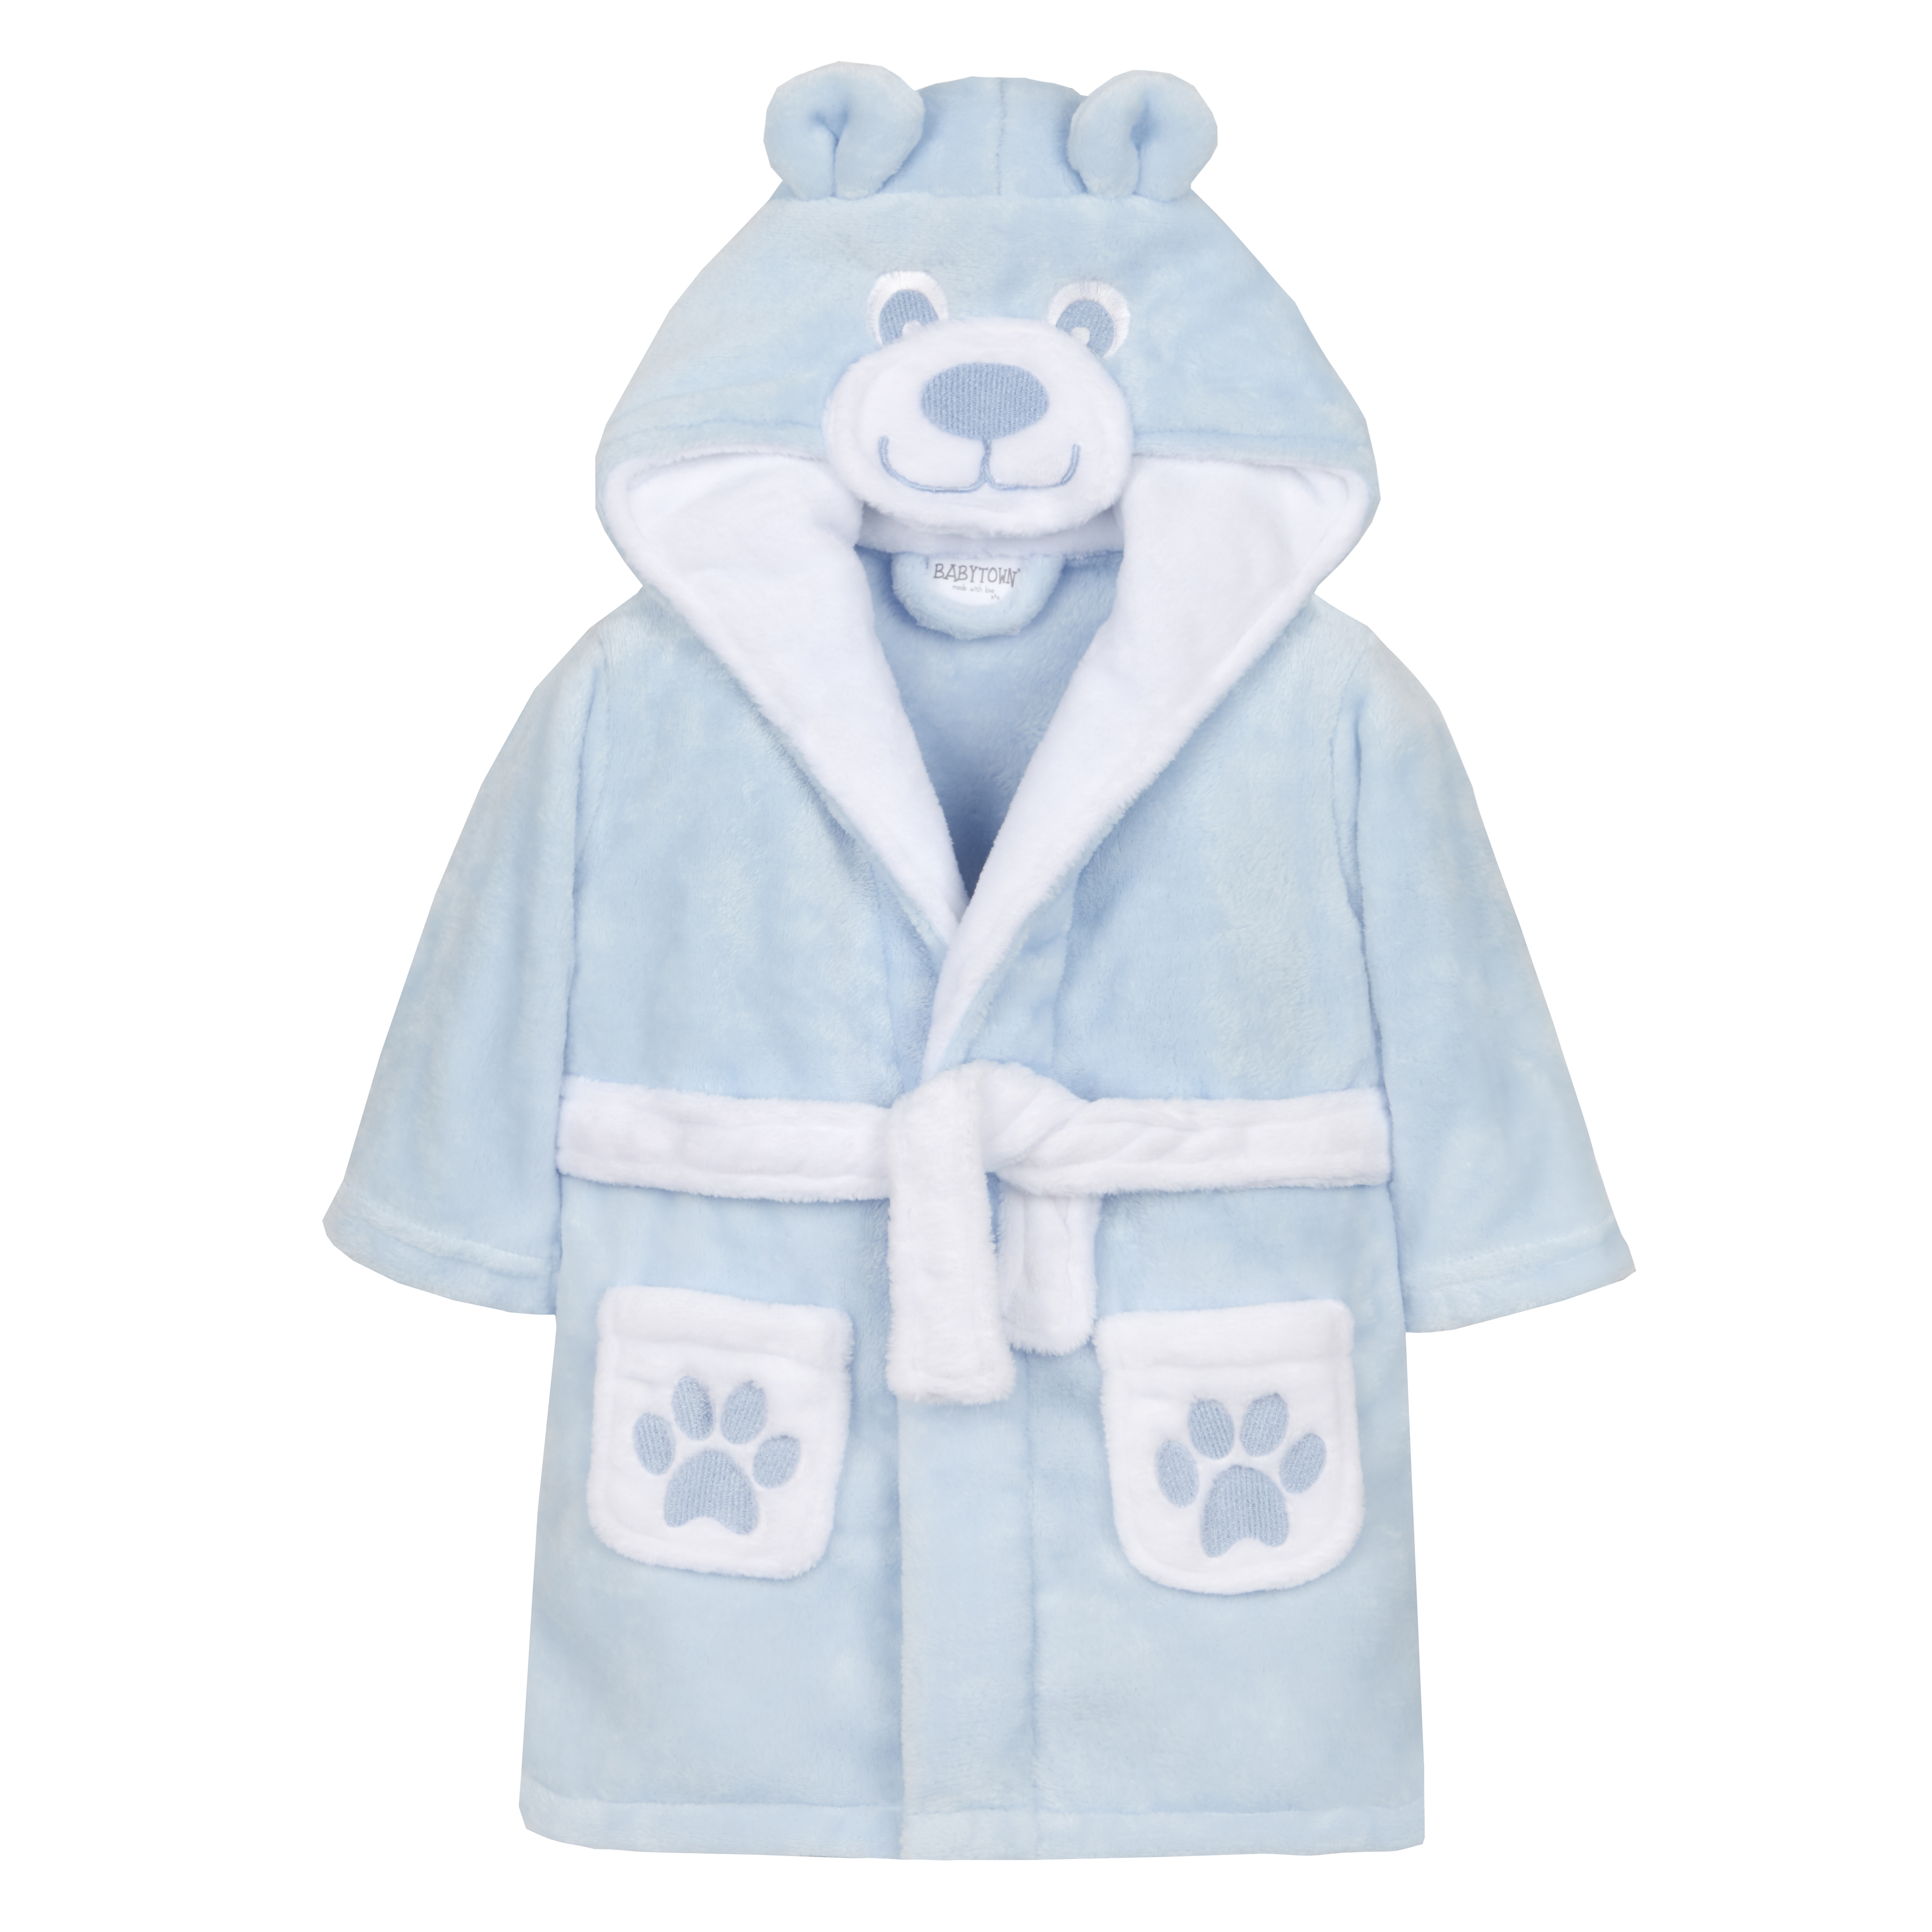 ce8fddca5e856 Details about Baby Girls & Boys Teddy Bear Dressing Gown Robe Novelty Plush  Fleece Unisex